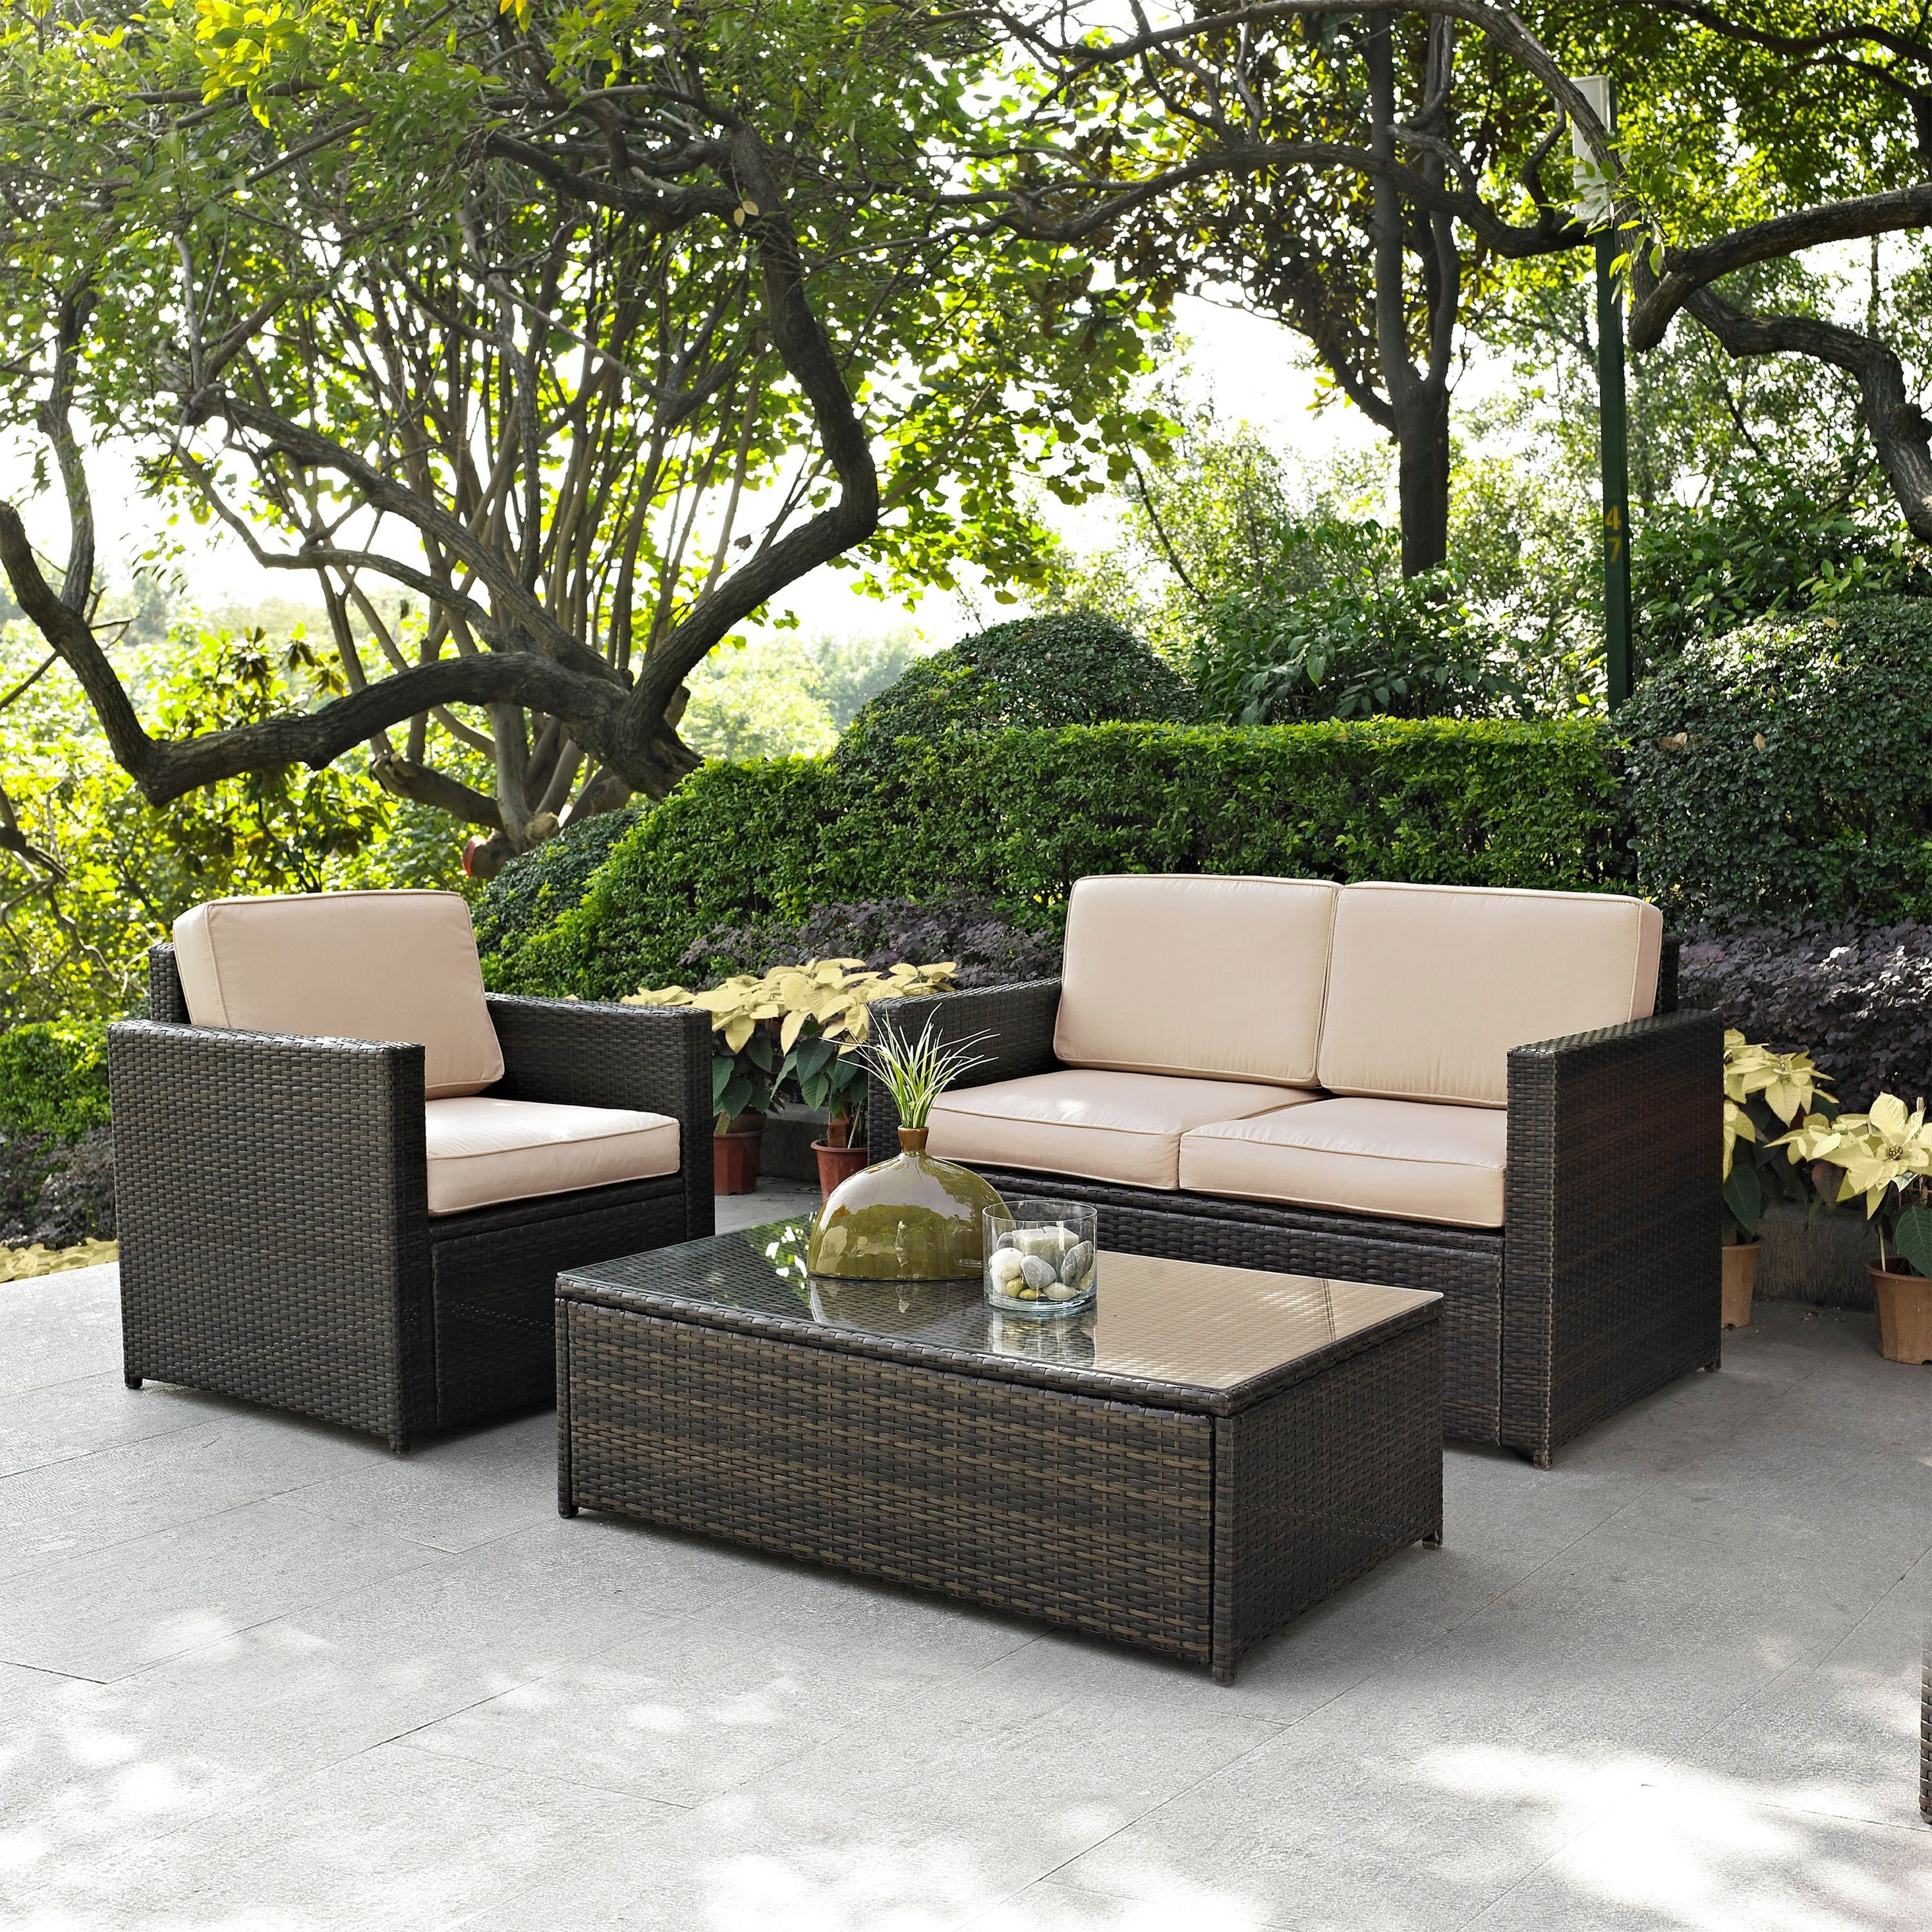 table outdoor furniture ideas best design of archives awesome sets small set zen patio